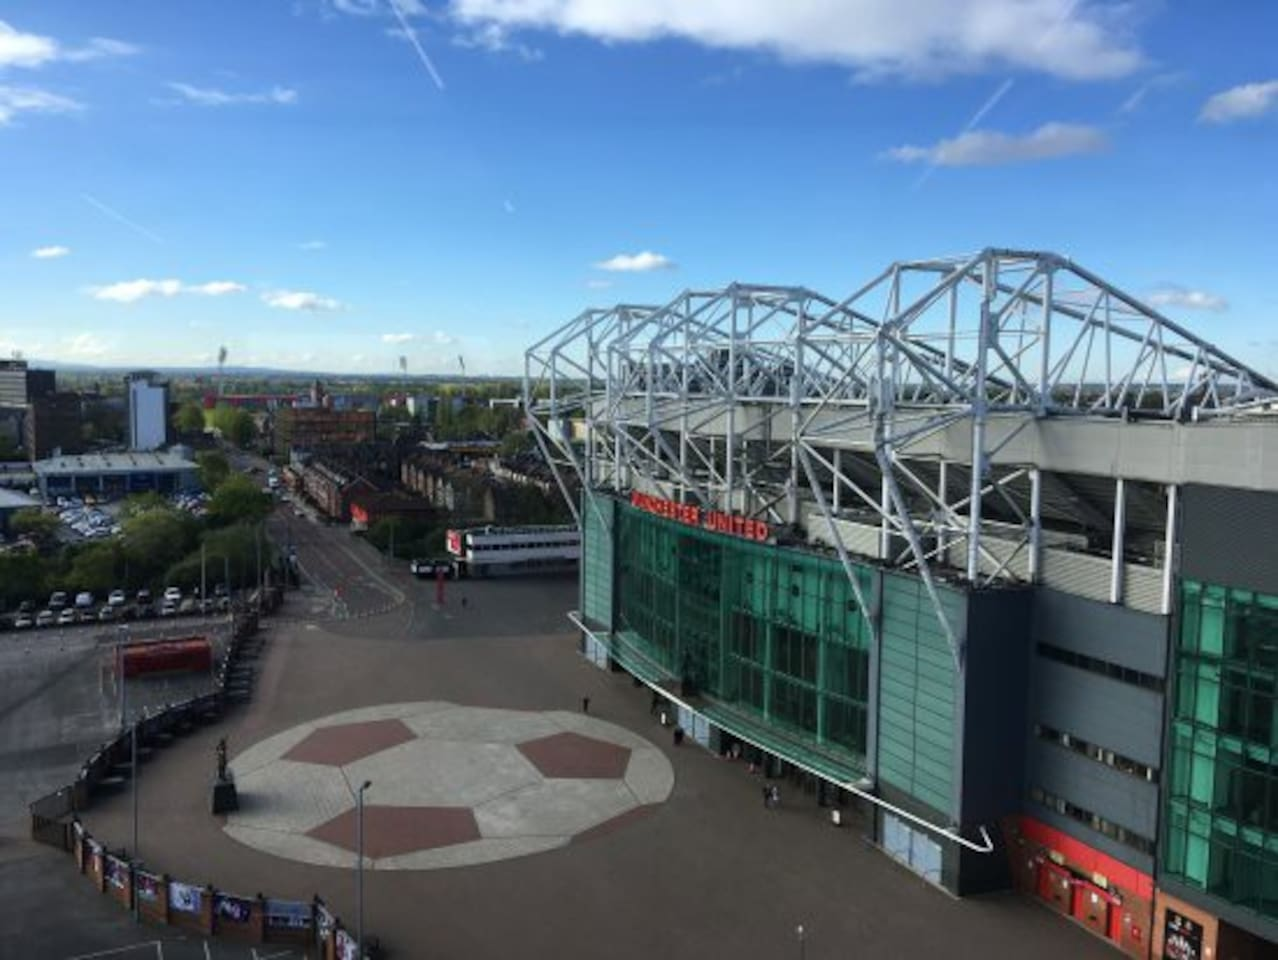 View up Sir Matt Busby Way with Manchester United stadium in foreground and Old Trafford Bunkhouse in the background